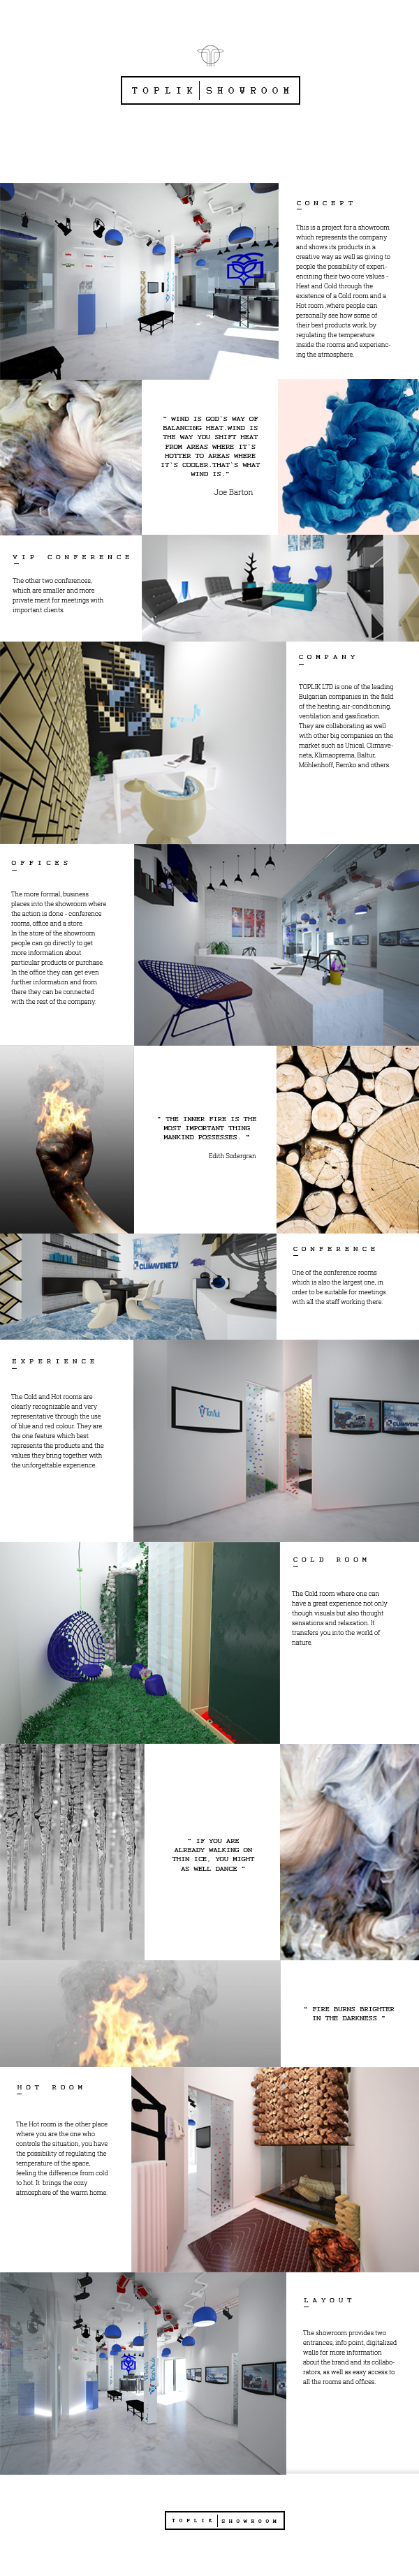 Toplik Showroom on Behance